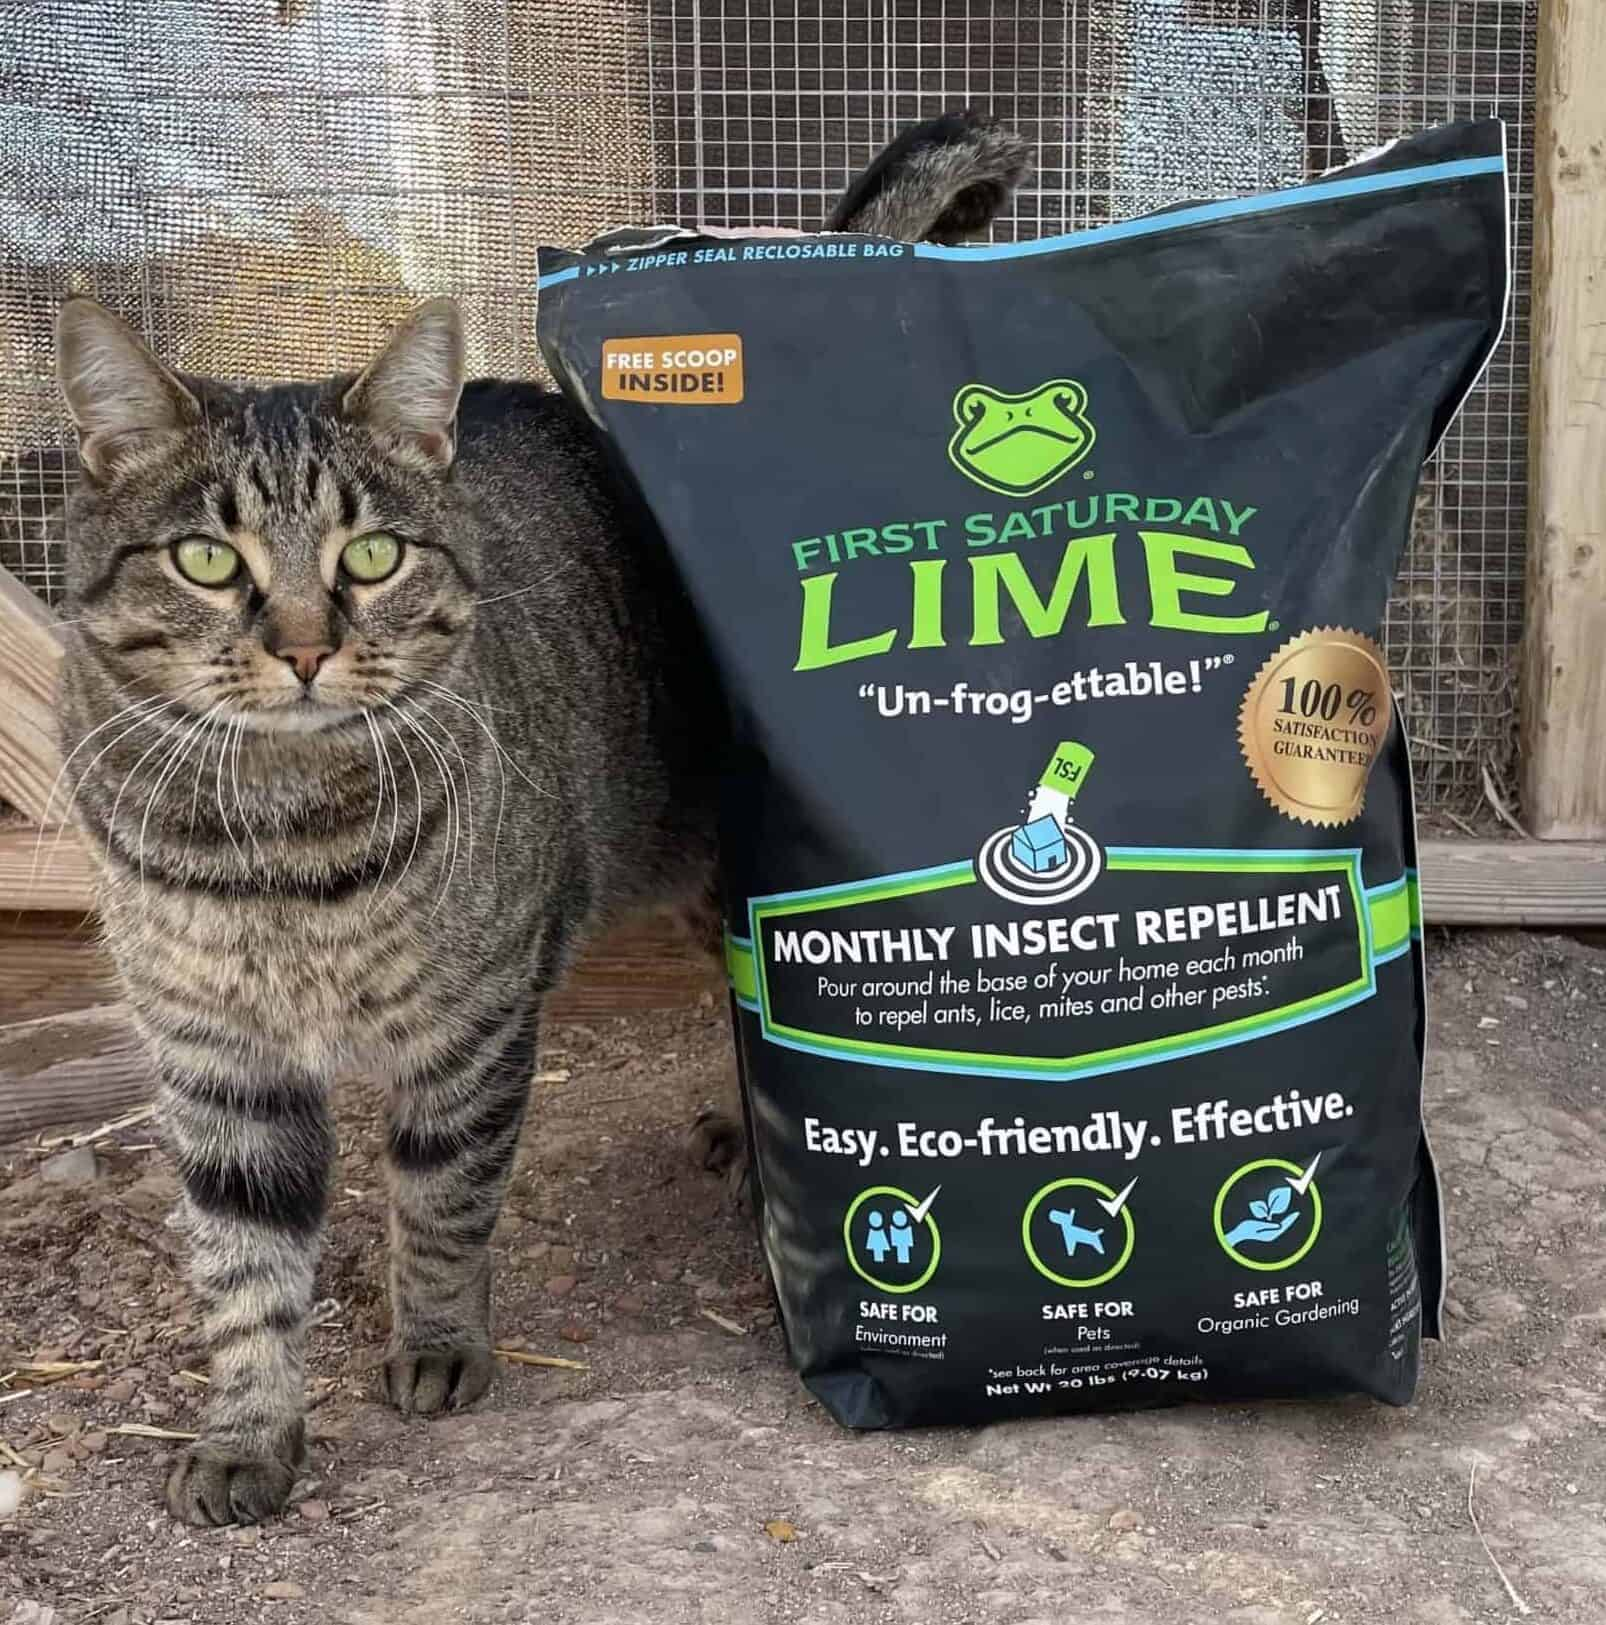 First Saturday Lime: How To Use This Insect Repellant And Deodorizer Around The Farm And Garden